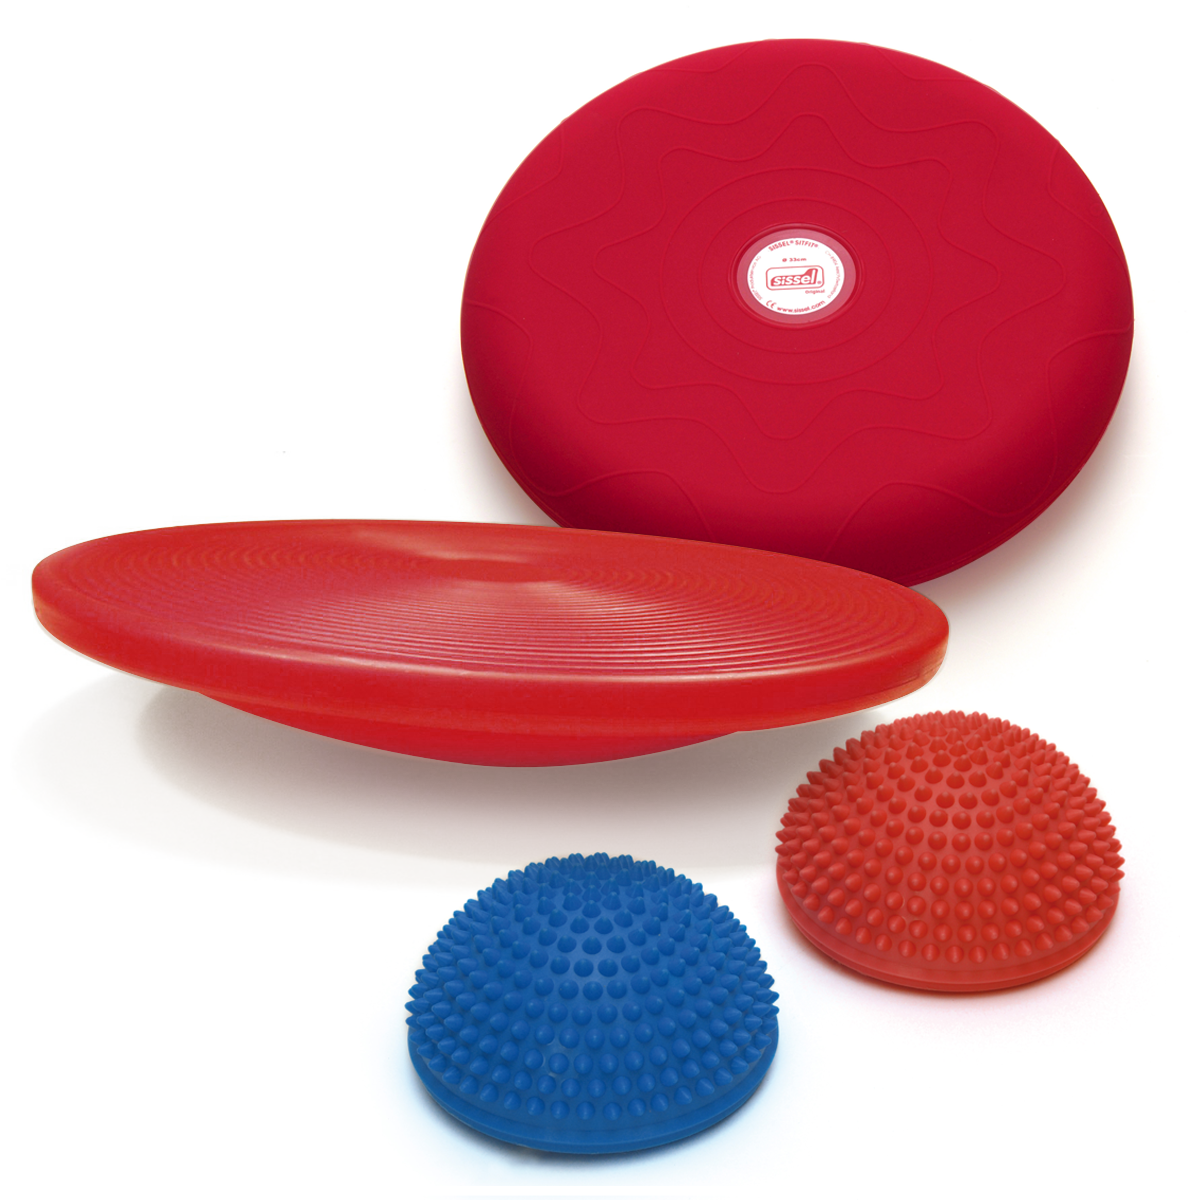 KIT EQUILIBRIO: Spiky Dome, Balanced Board e Sitfit 33 rosso